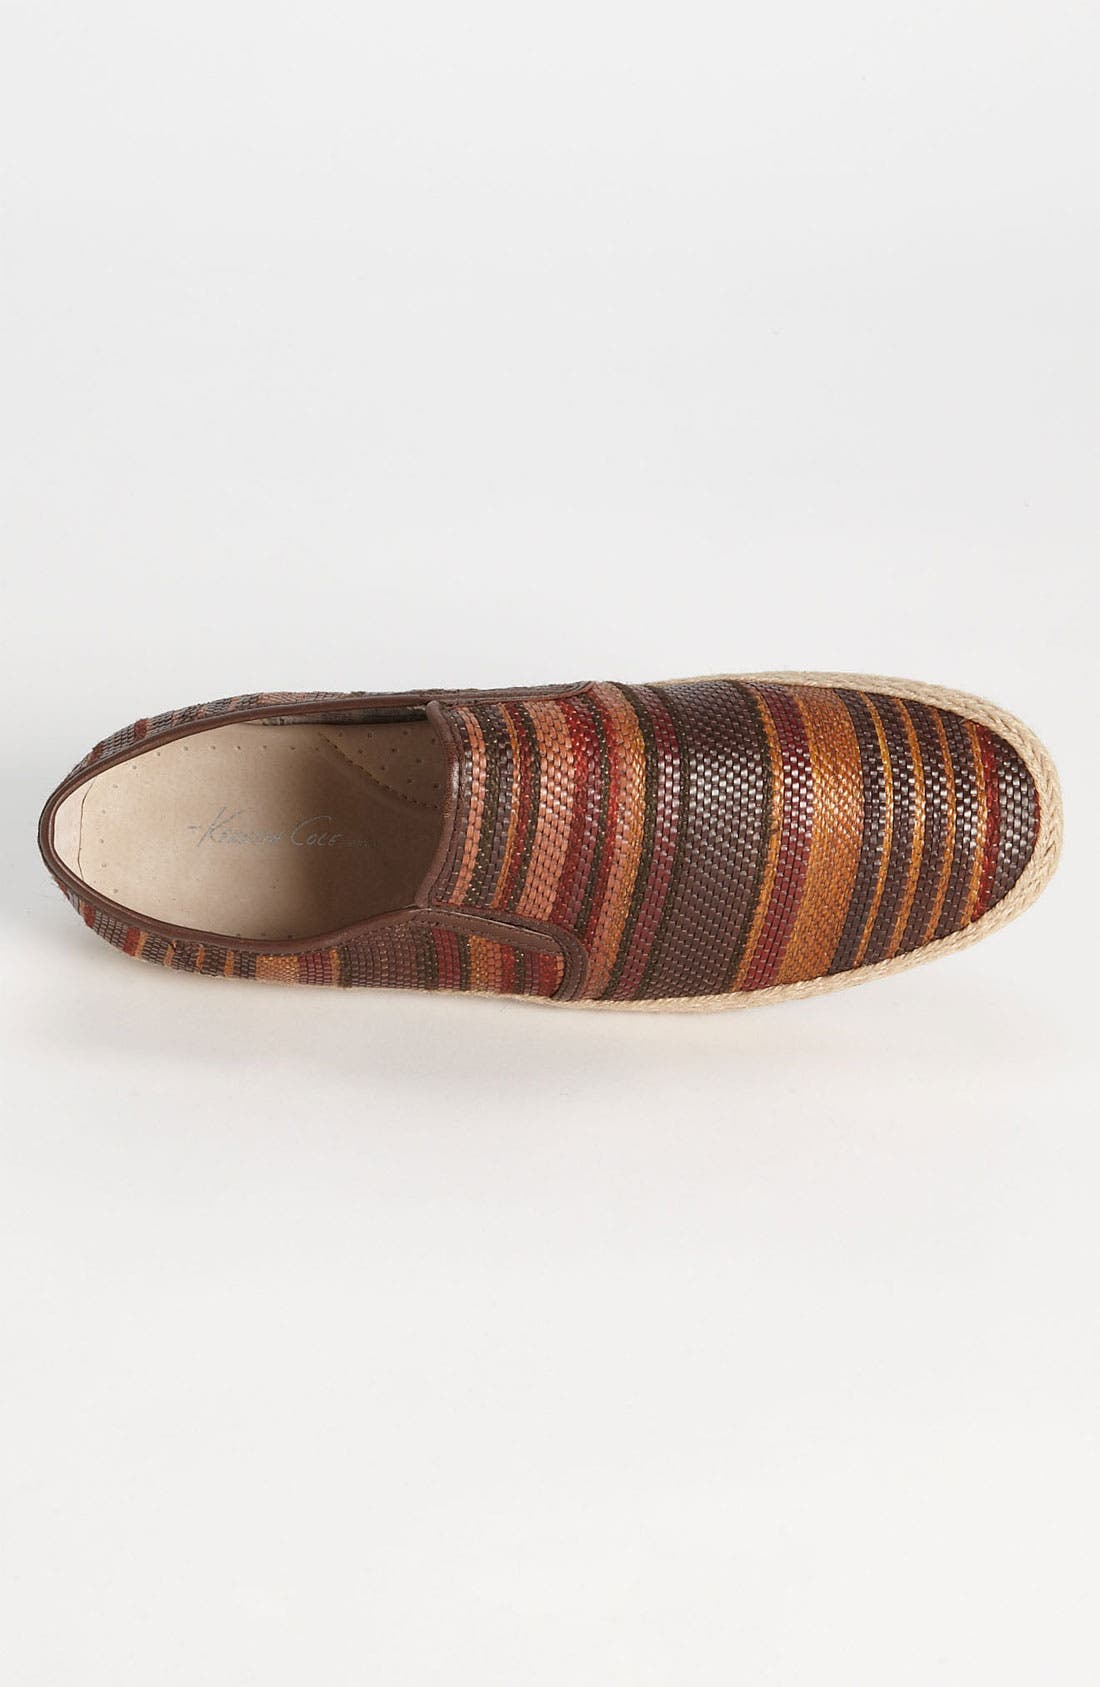 Alternate Image 3  - Kenneth Cole New York 'Got 2 Be-Weave' Slip-On